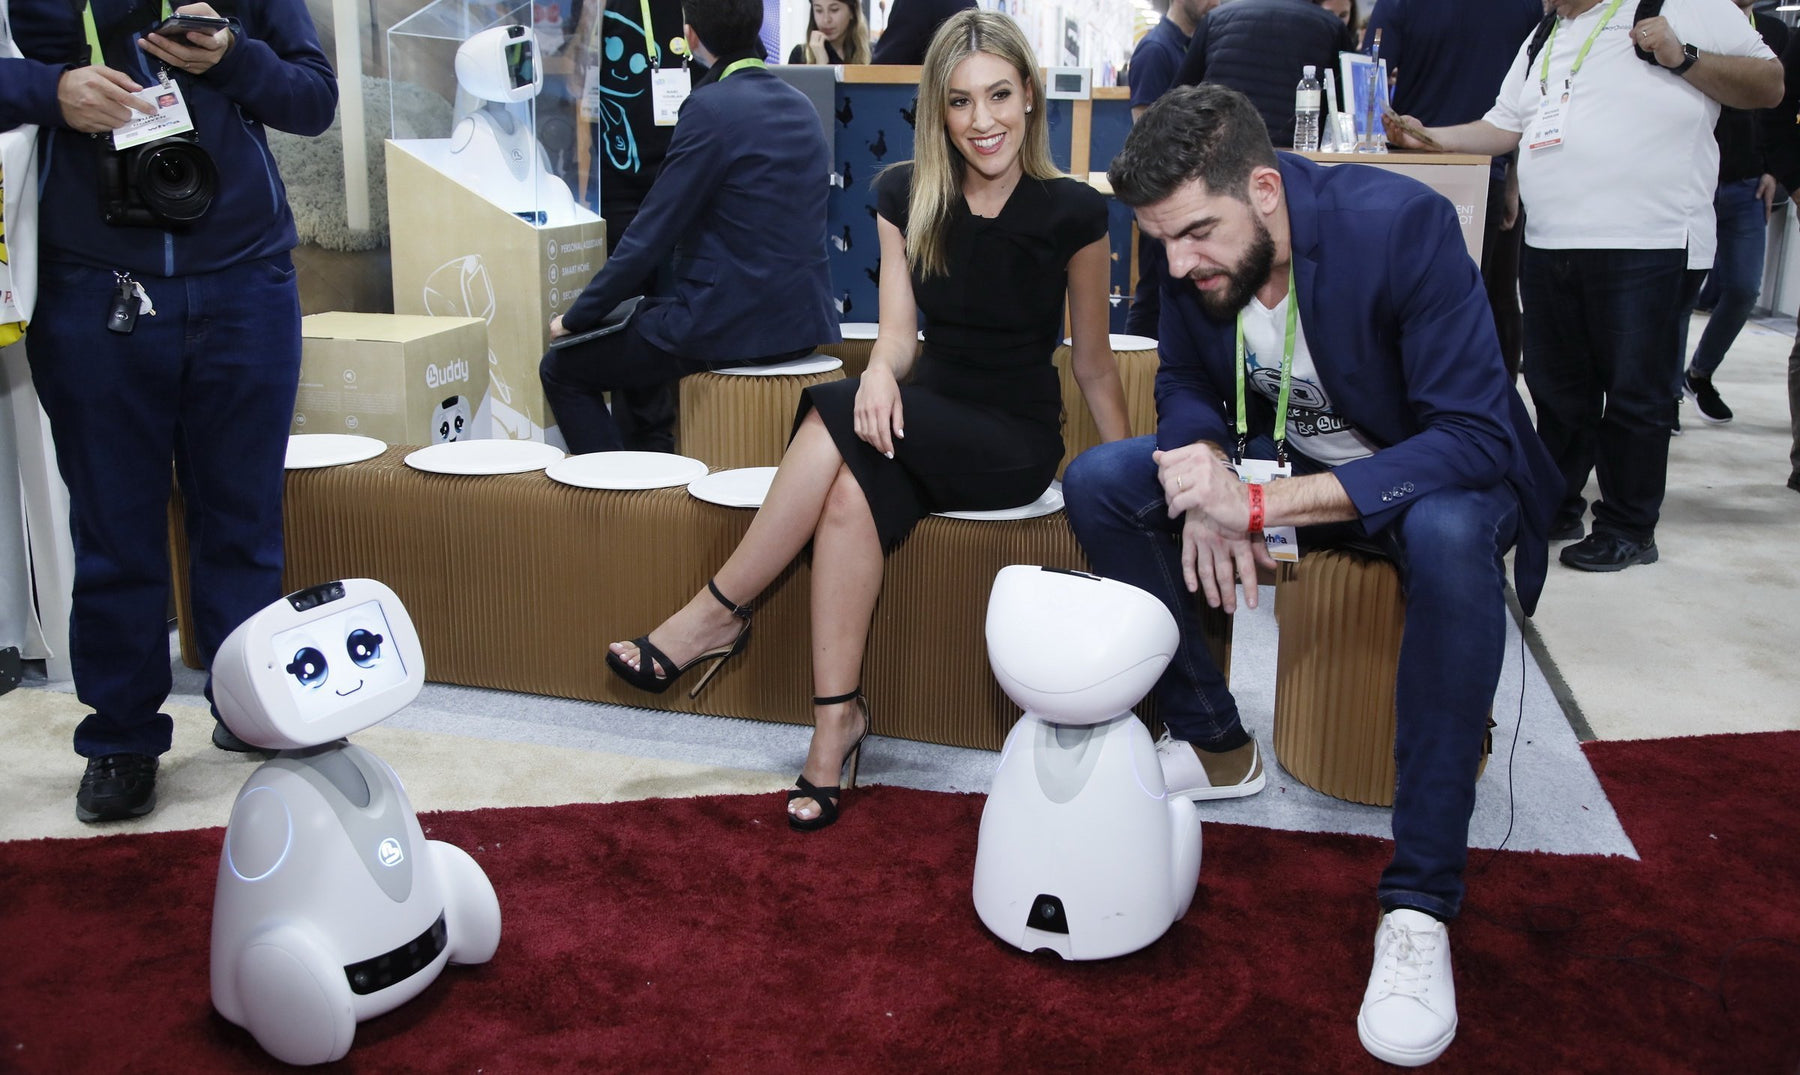 The Top 12 Trends and Highlights of CES 2018